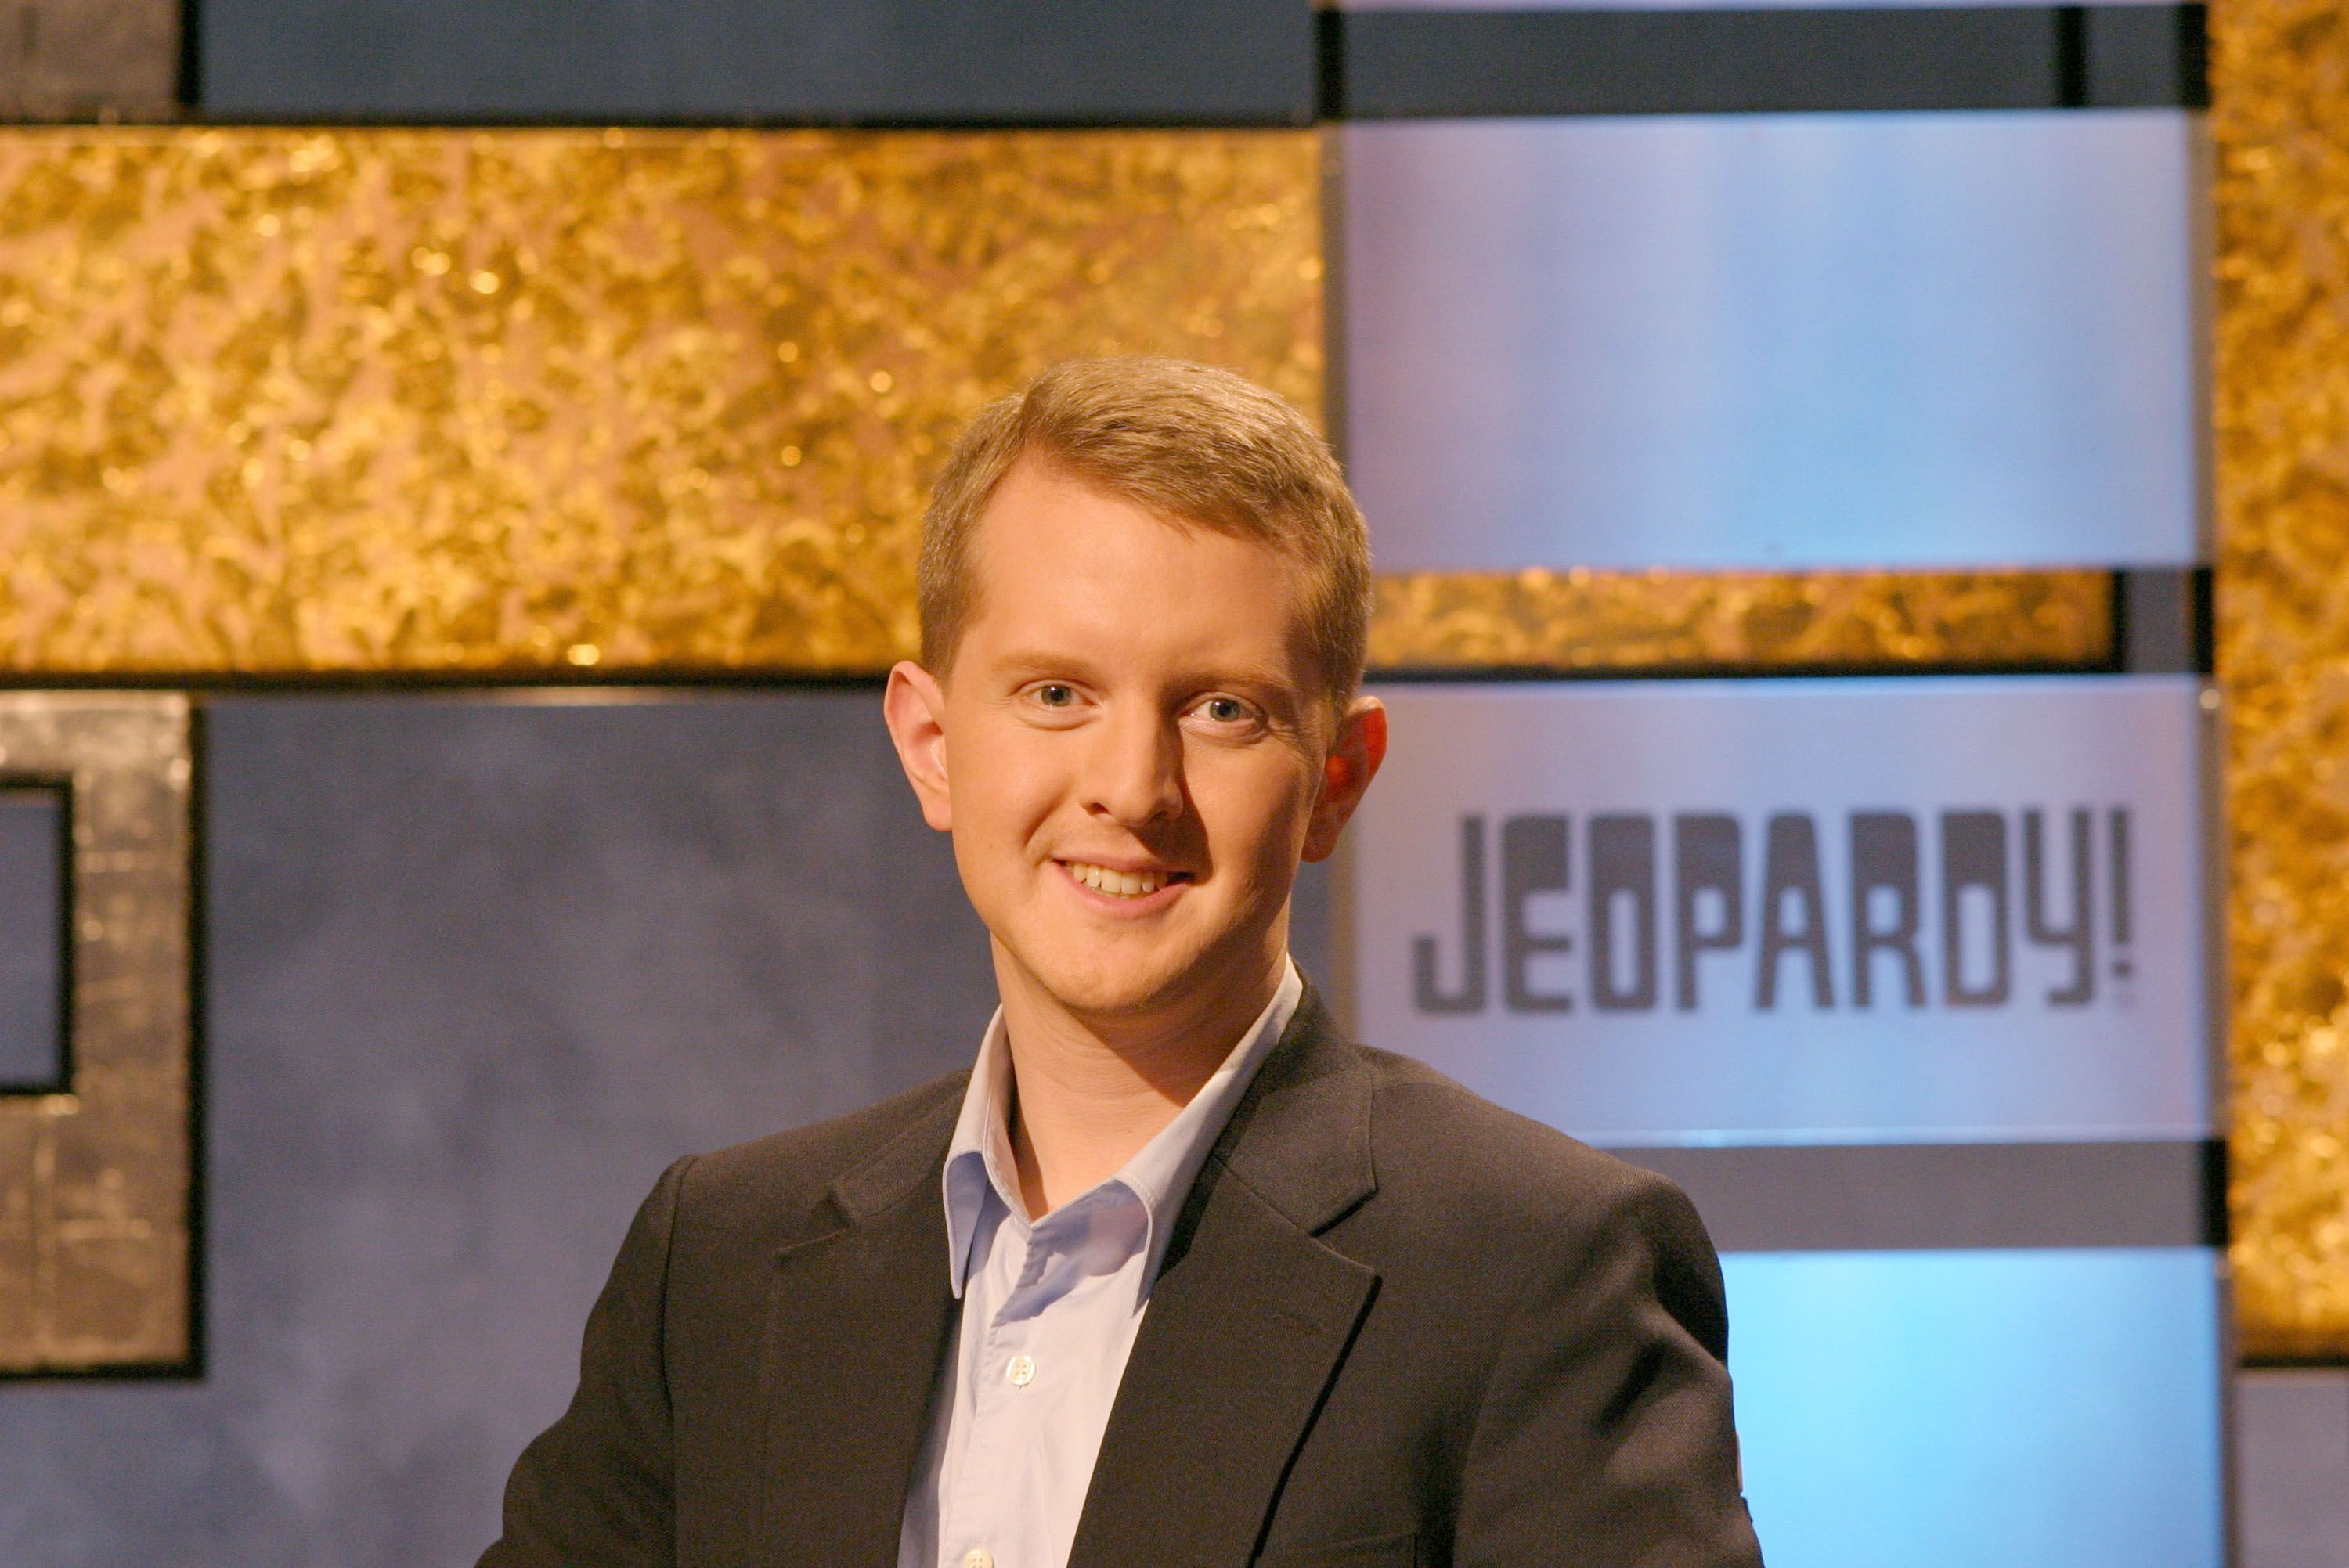 """Ken Jennings poses in this undated handout photo on the set of """"Jeopardy!"""" on an episode broadcast on November 30, 2004 